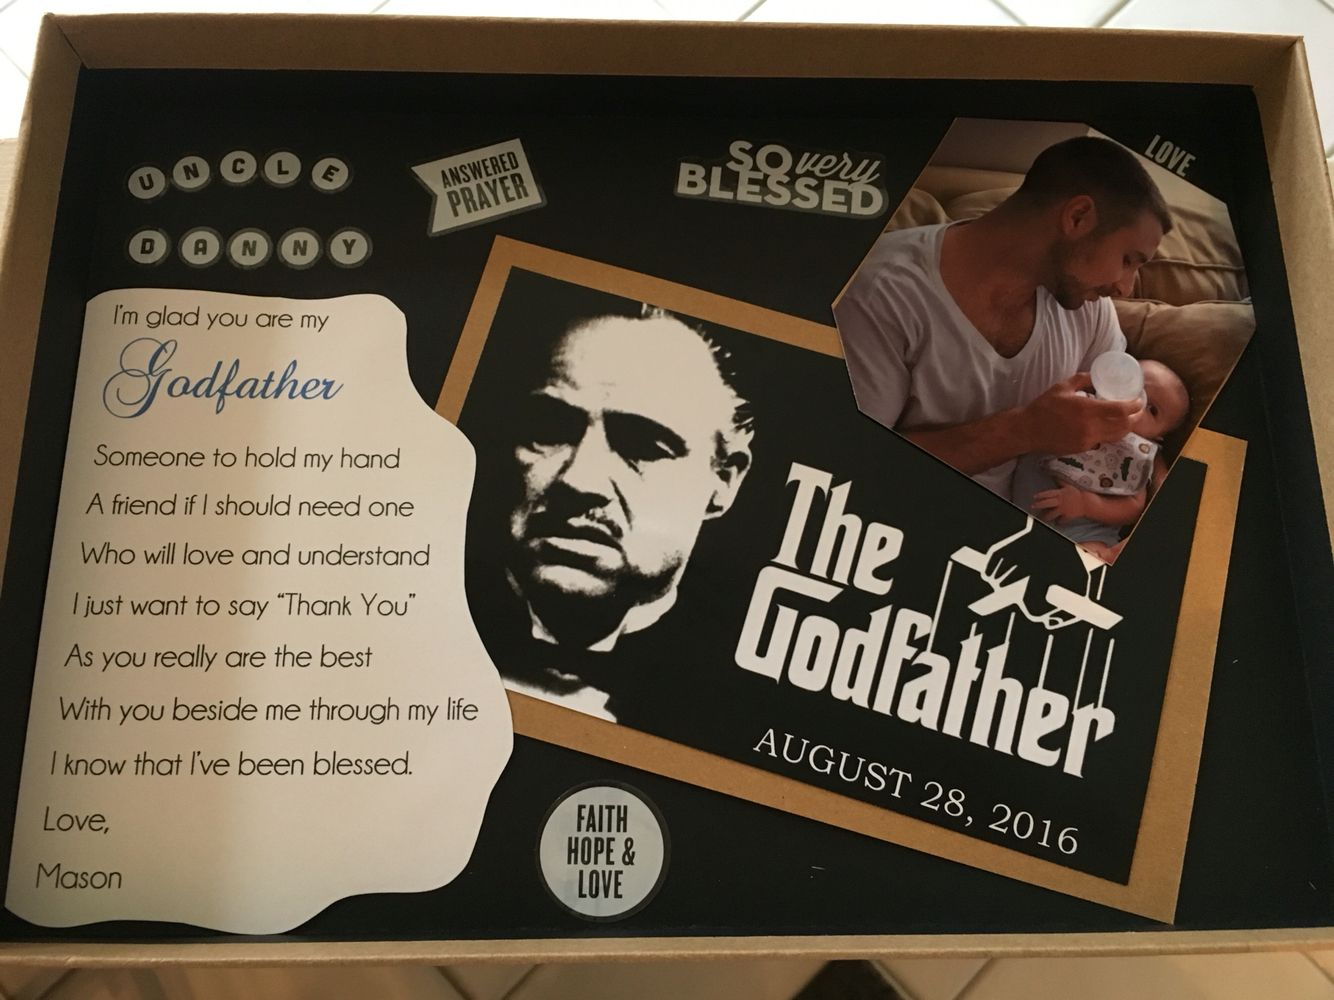 Godfather Gift Masonsbaptism Godfather Gifts Godparent Gifts Baby Boy Baptism